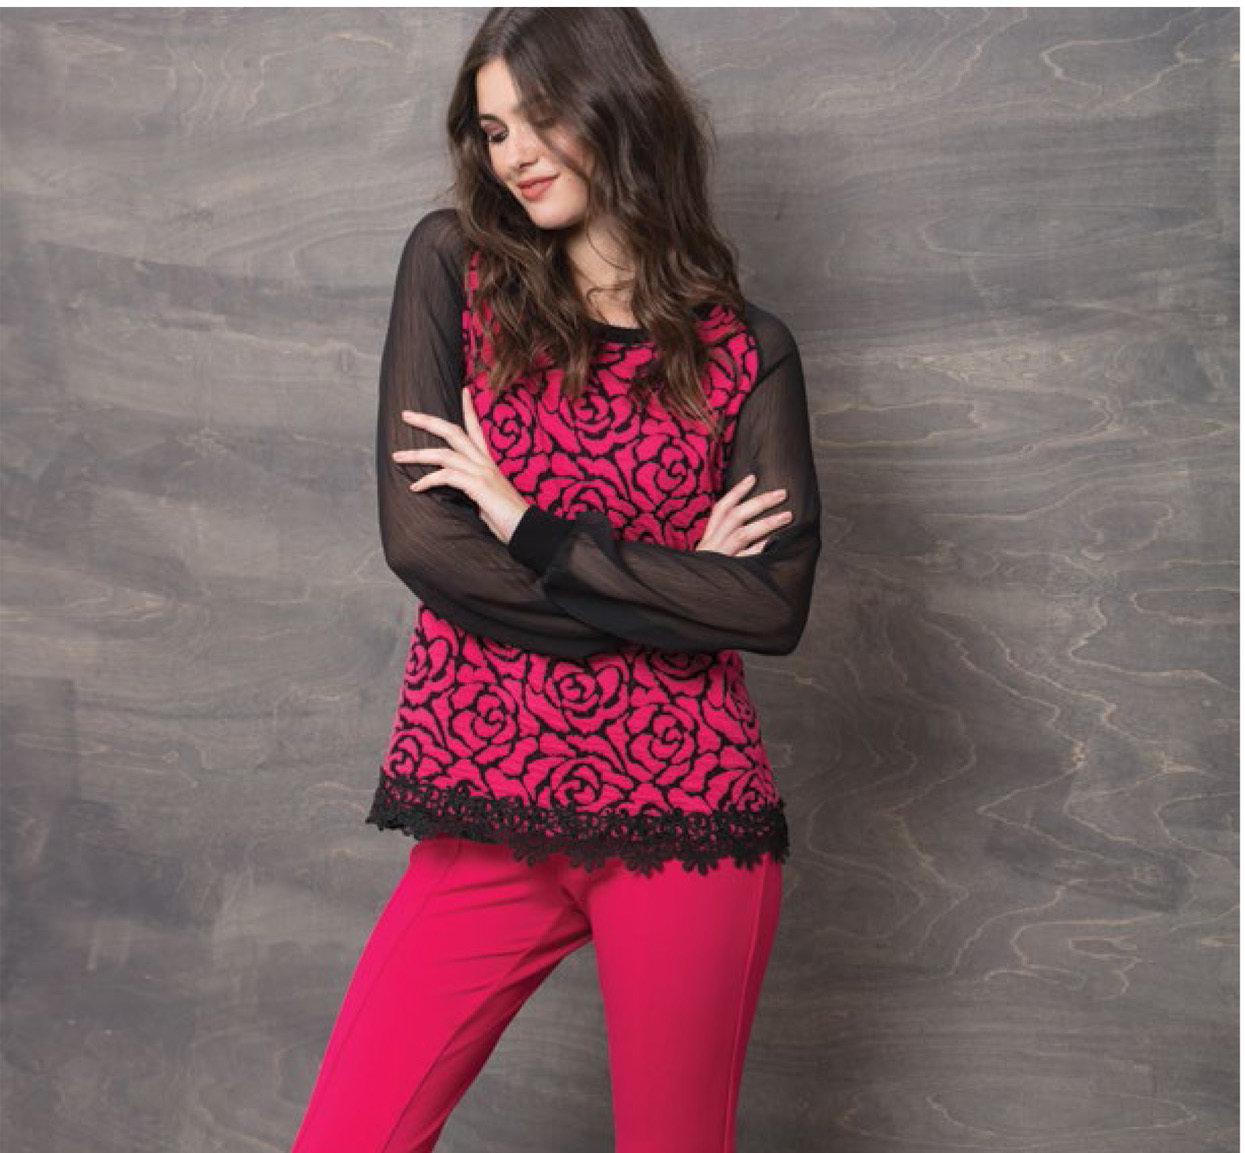 Maloka: Fuschia Rose Imprinted Asymmetrical Hem Sweater (2 Left!) MK_MARIE_N2